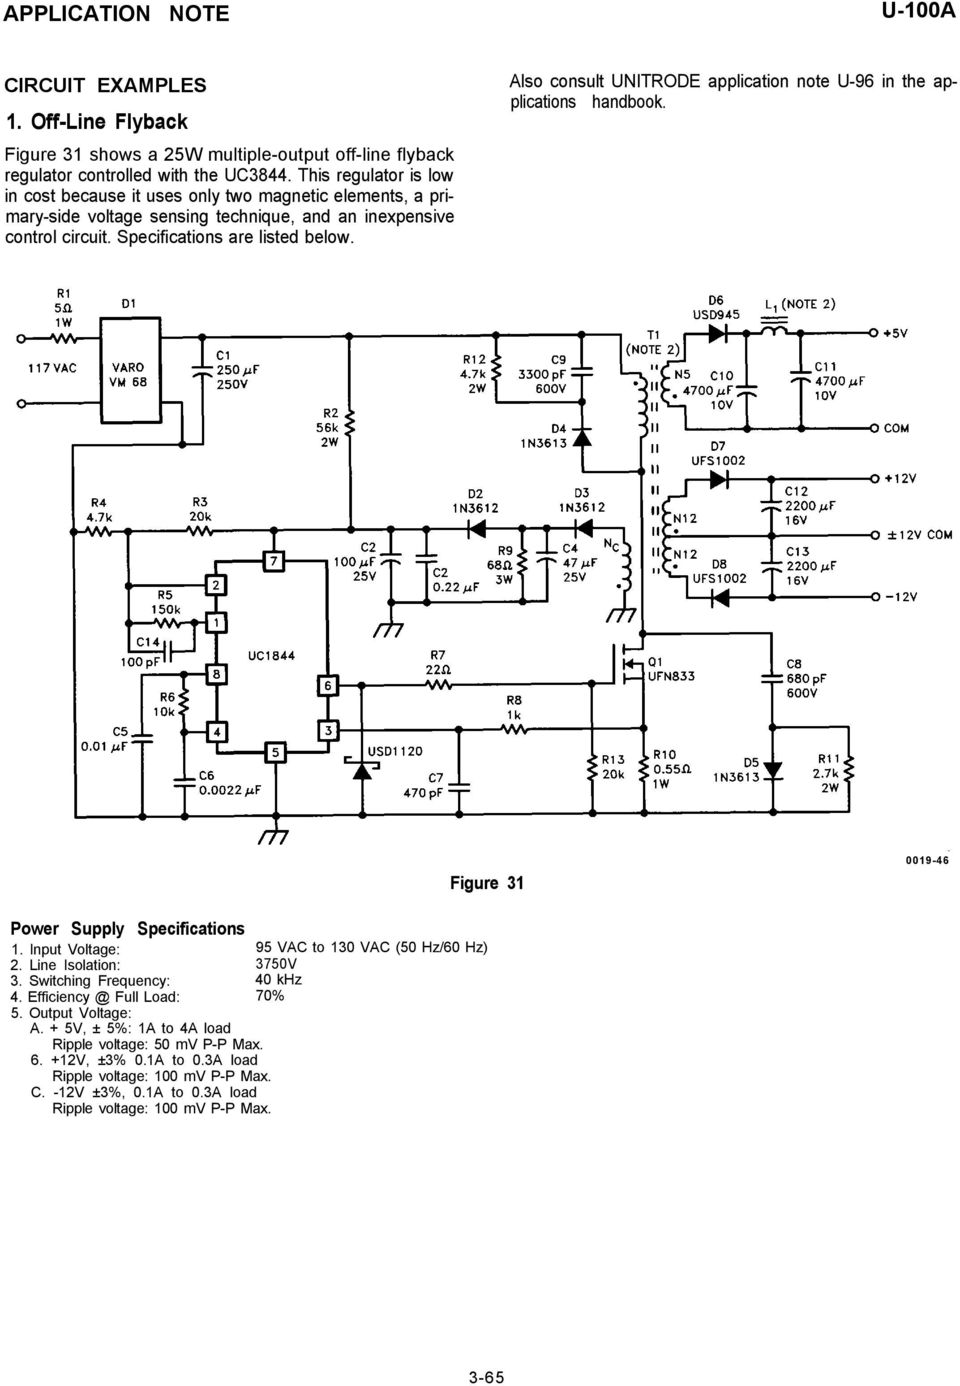 Application Note Uc3842 3 4 5 Provides Low Cost Current Mode Control 1000 Watt Lifier Circuit Furthermore 6v To 12v Dc Converter Also Consult Unitrode U 96 In The Applications Handbook Figure 31 0019